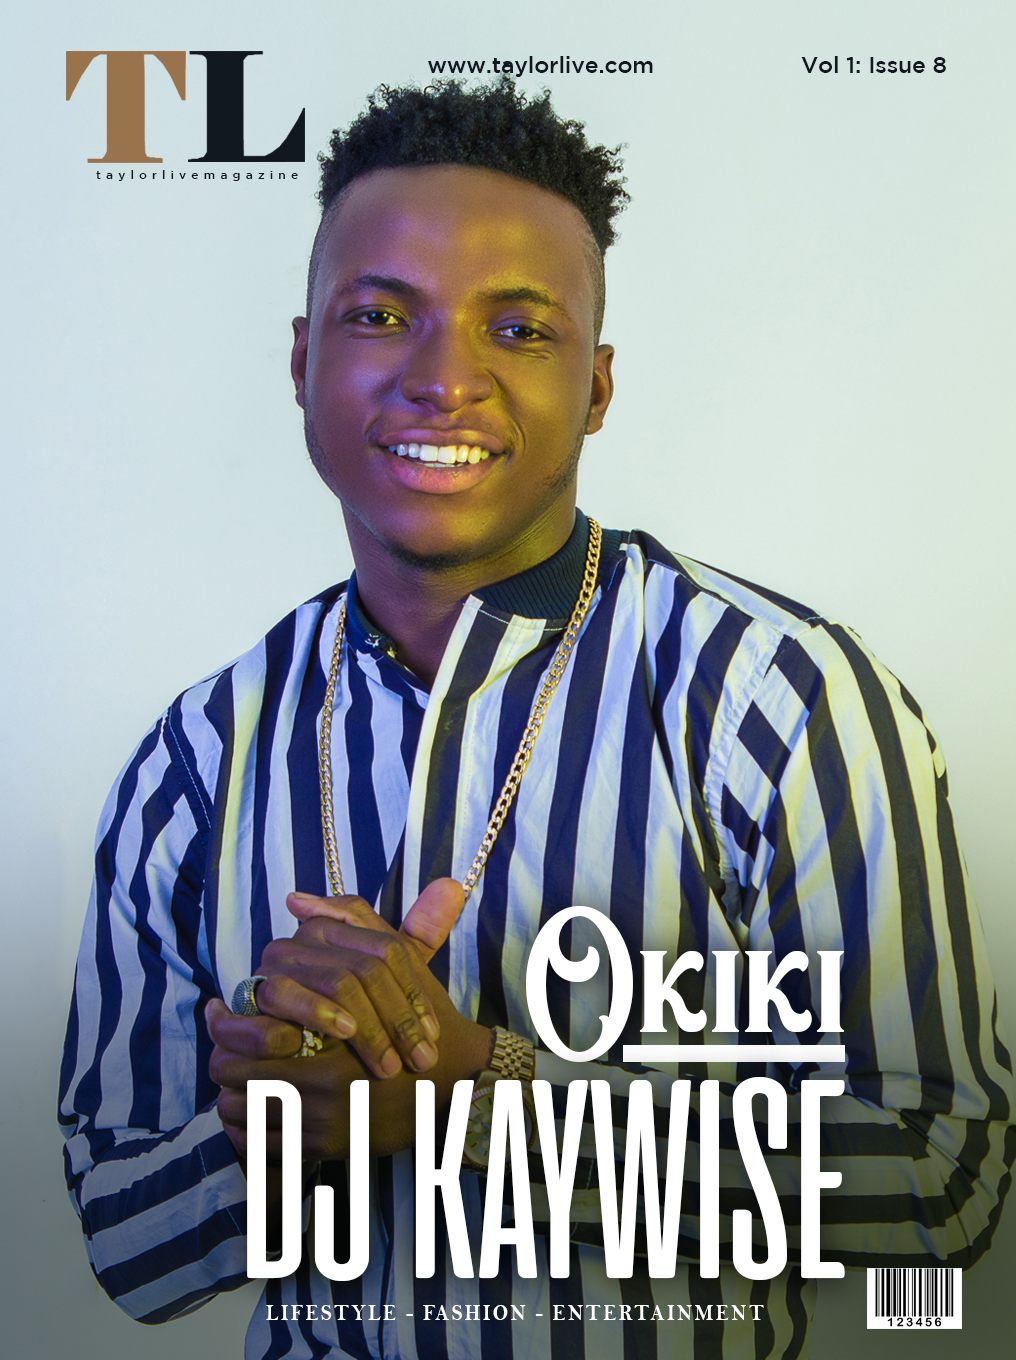 OKIKI! DJ KAYWISE Covers Taylor Live Magazine's Latest Issue